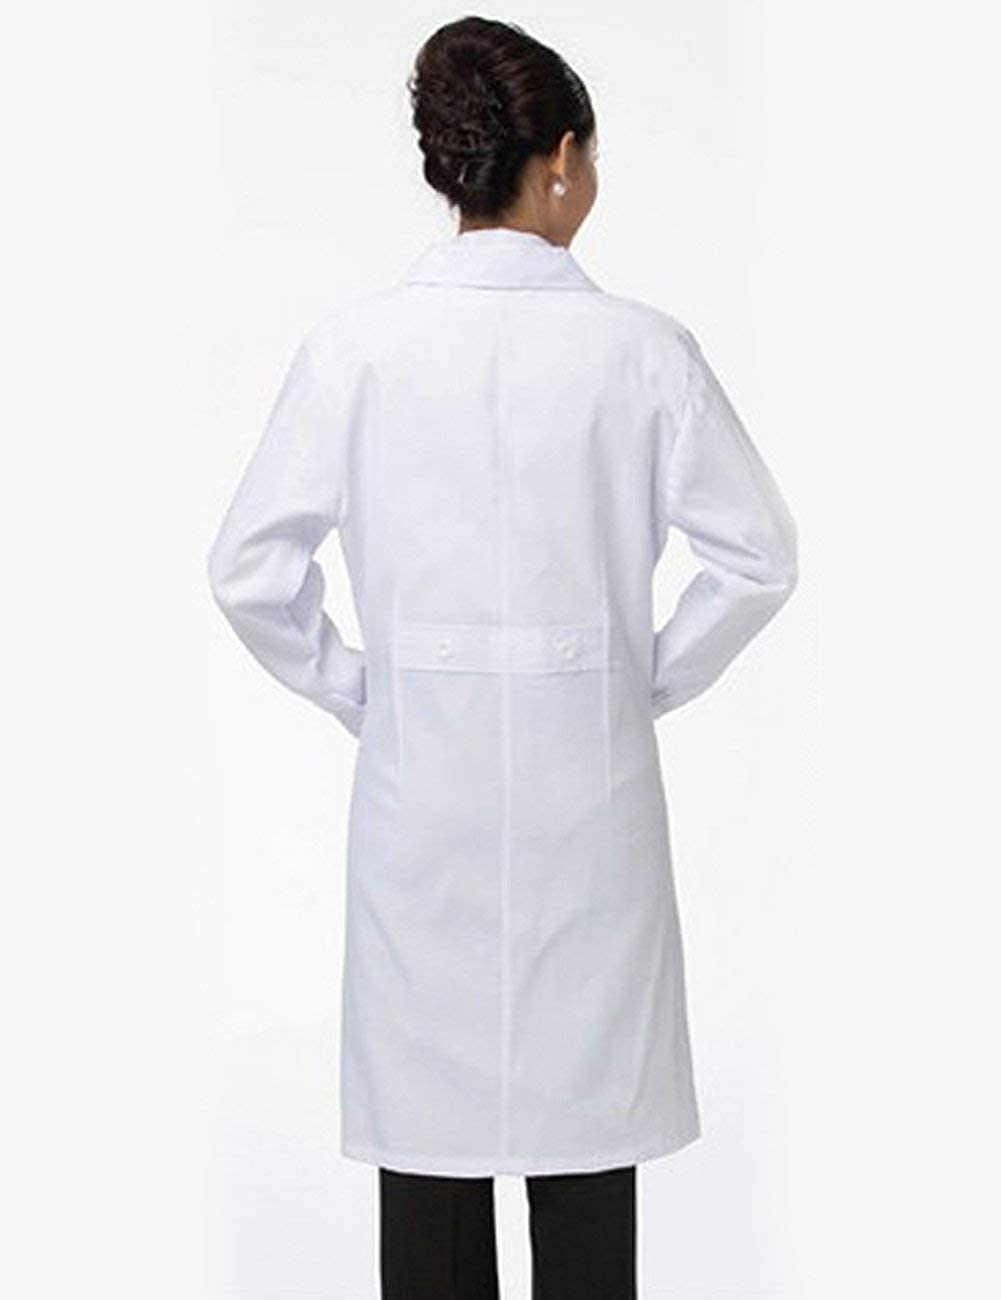 Matchwill Camice da Laboratorio//Bianco Medico Lavoro Cappotto Uomo /& Donna per Chimico,Scolastico,Studenti,Scientifico,Dental Clinic,Cosplay